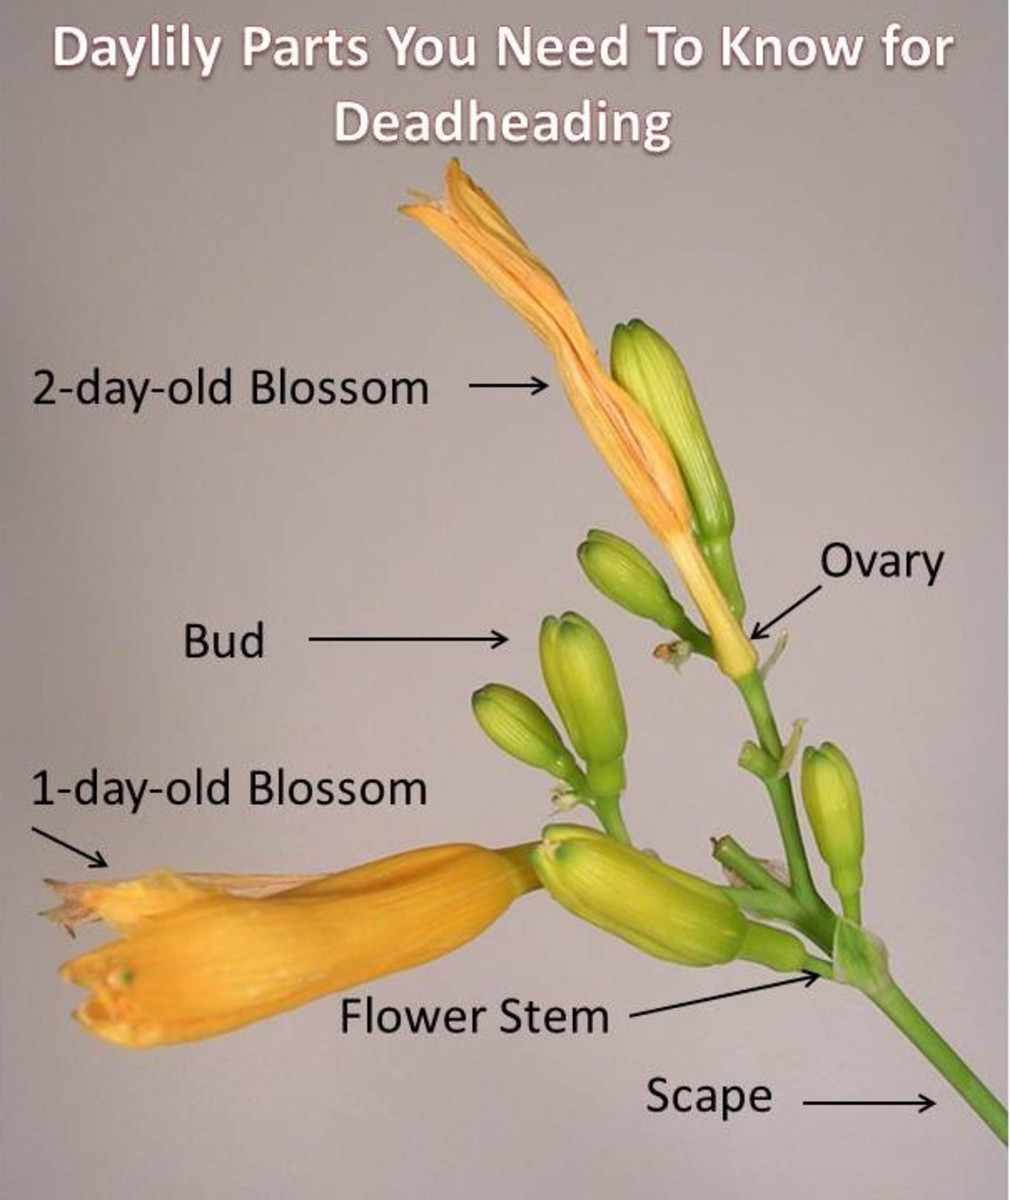 Parts of the daylily.